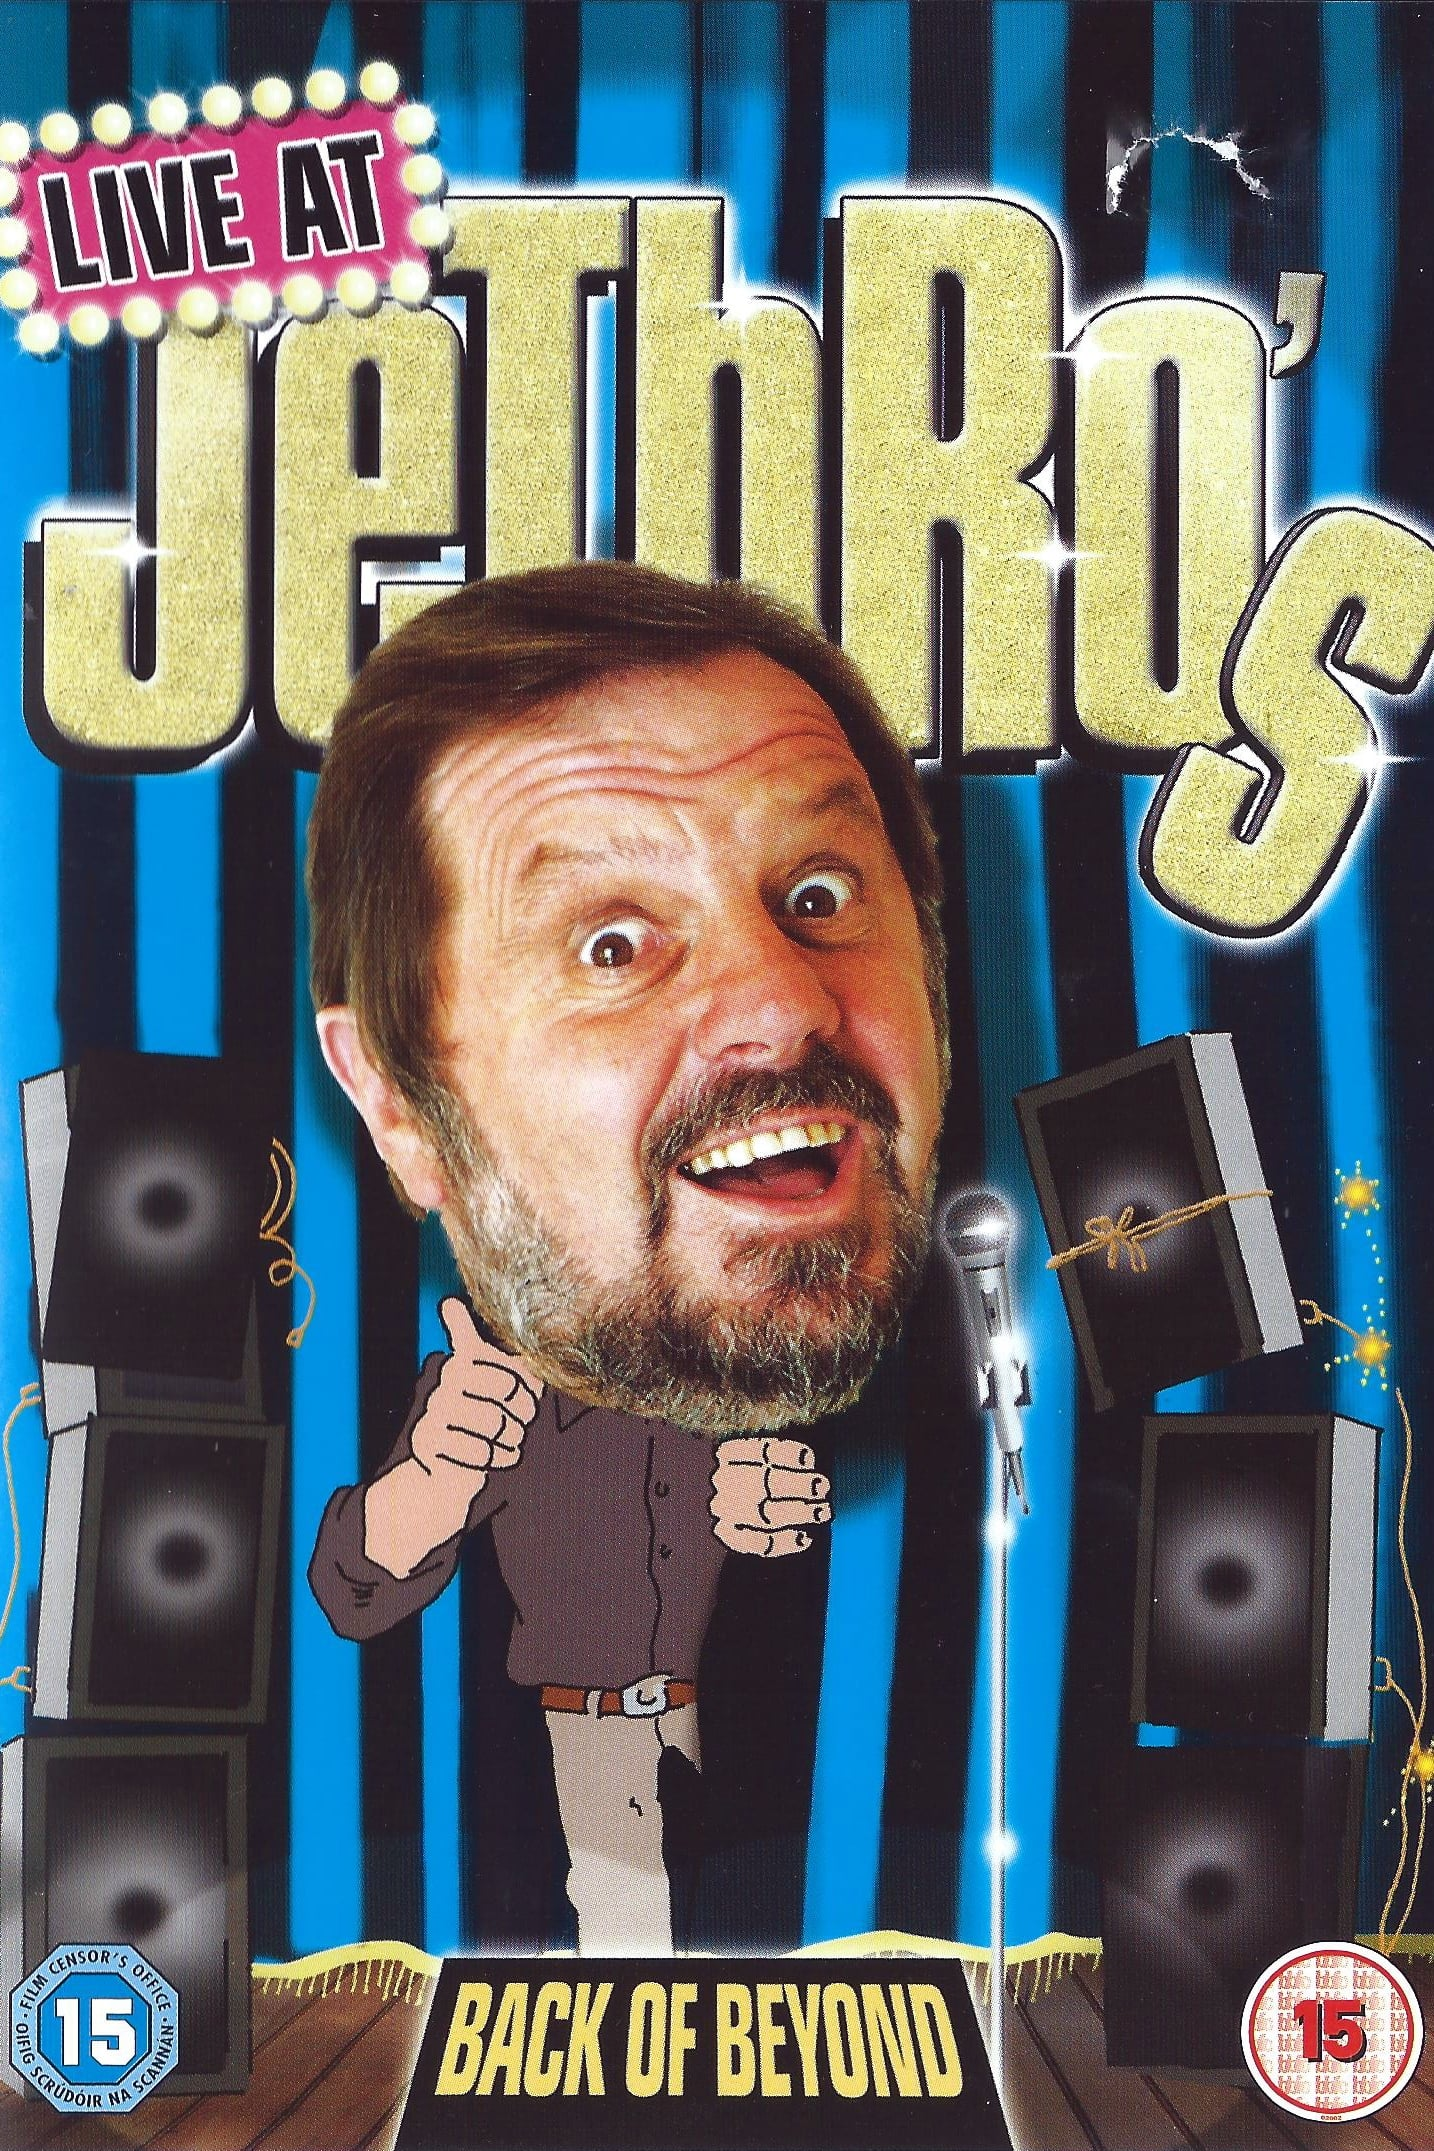 Jethro: Live at Jethro's - Back of Beyond (2007)